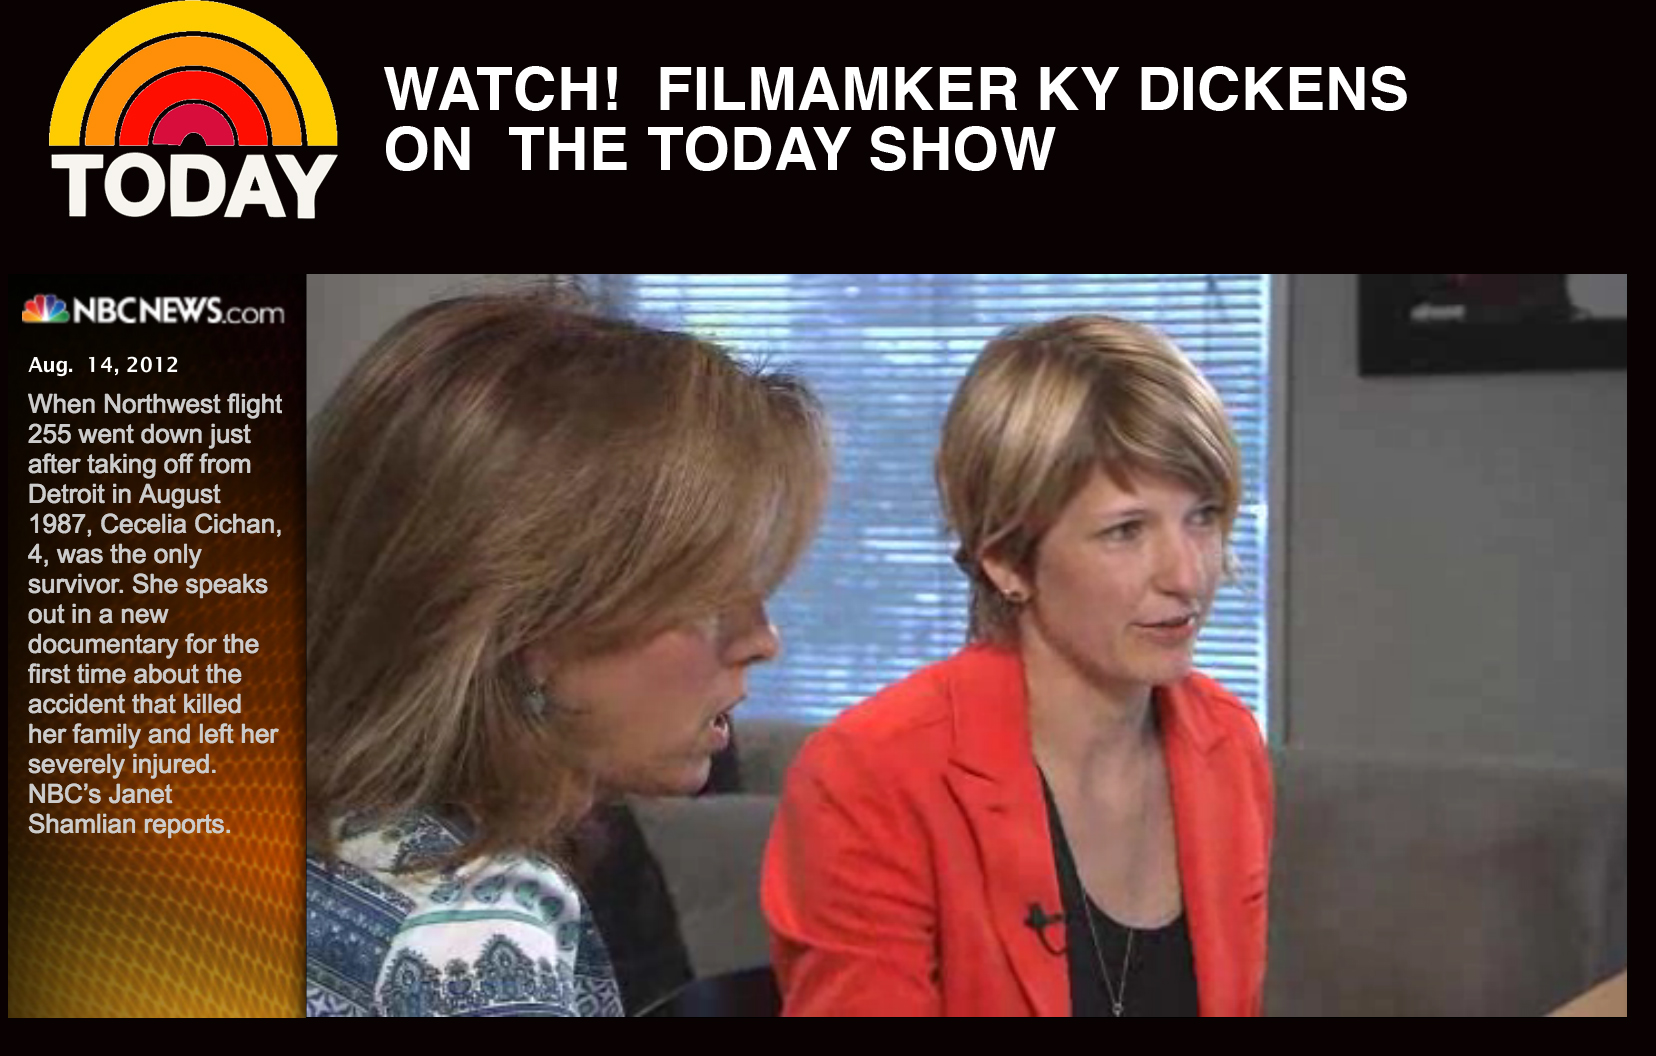 Watch Ky Dickens on the Today Show  here